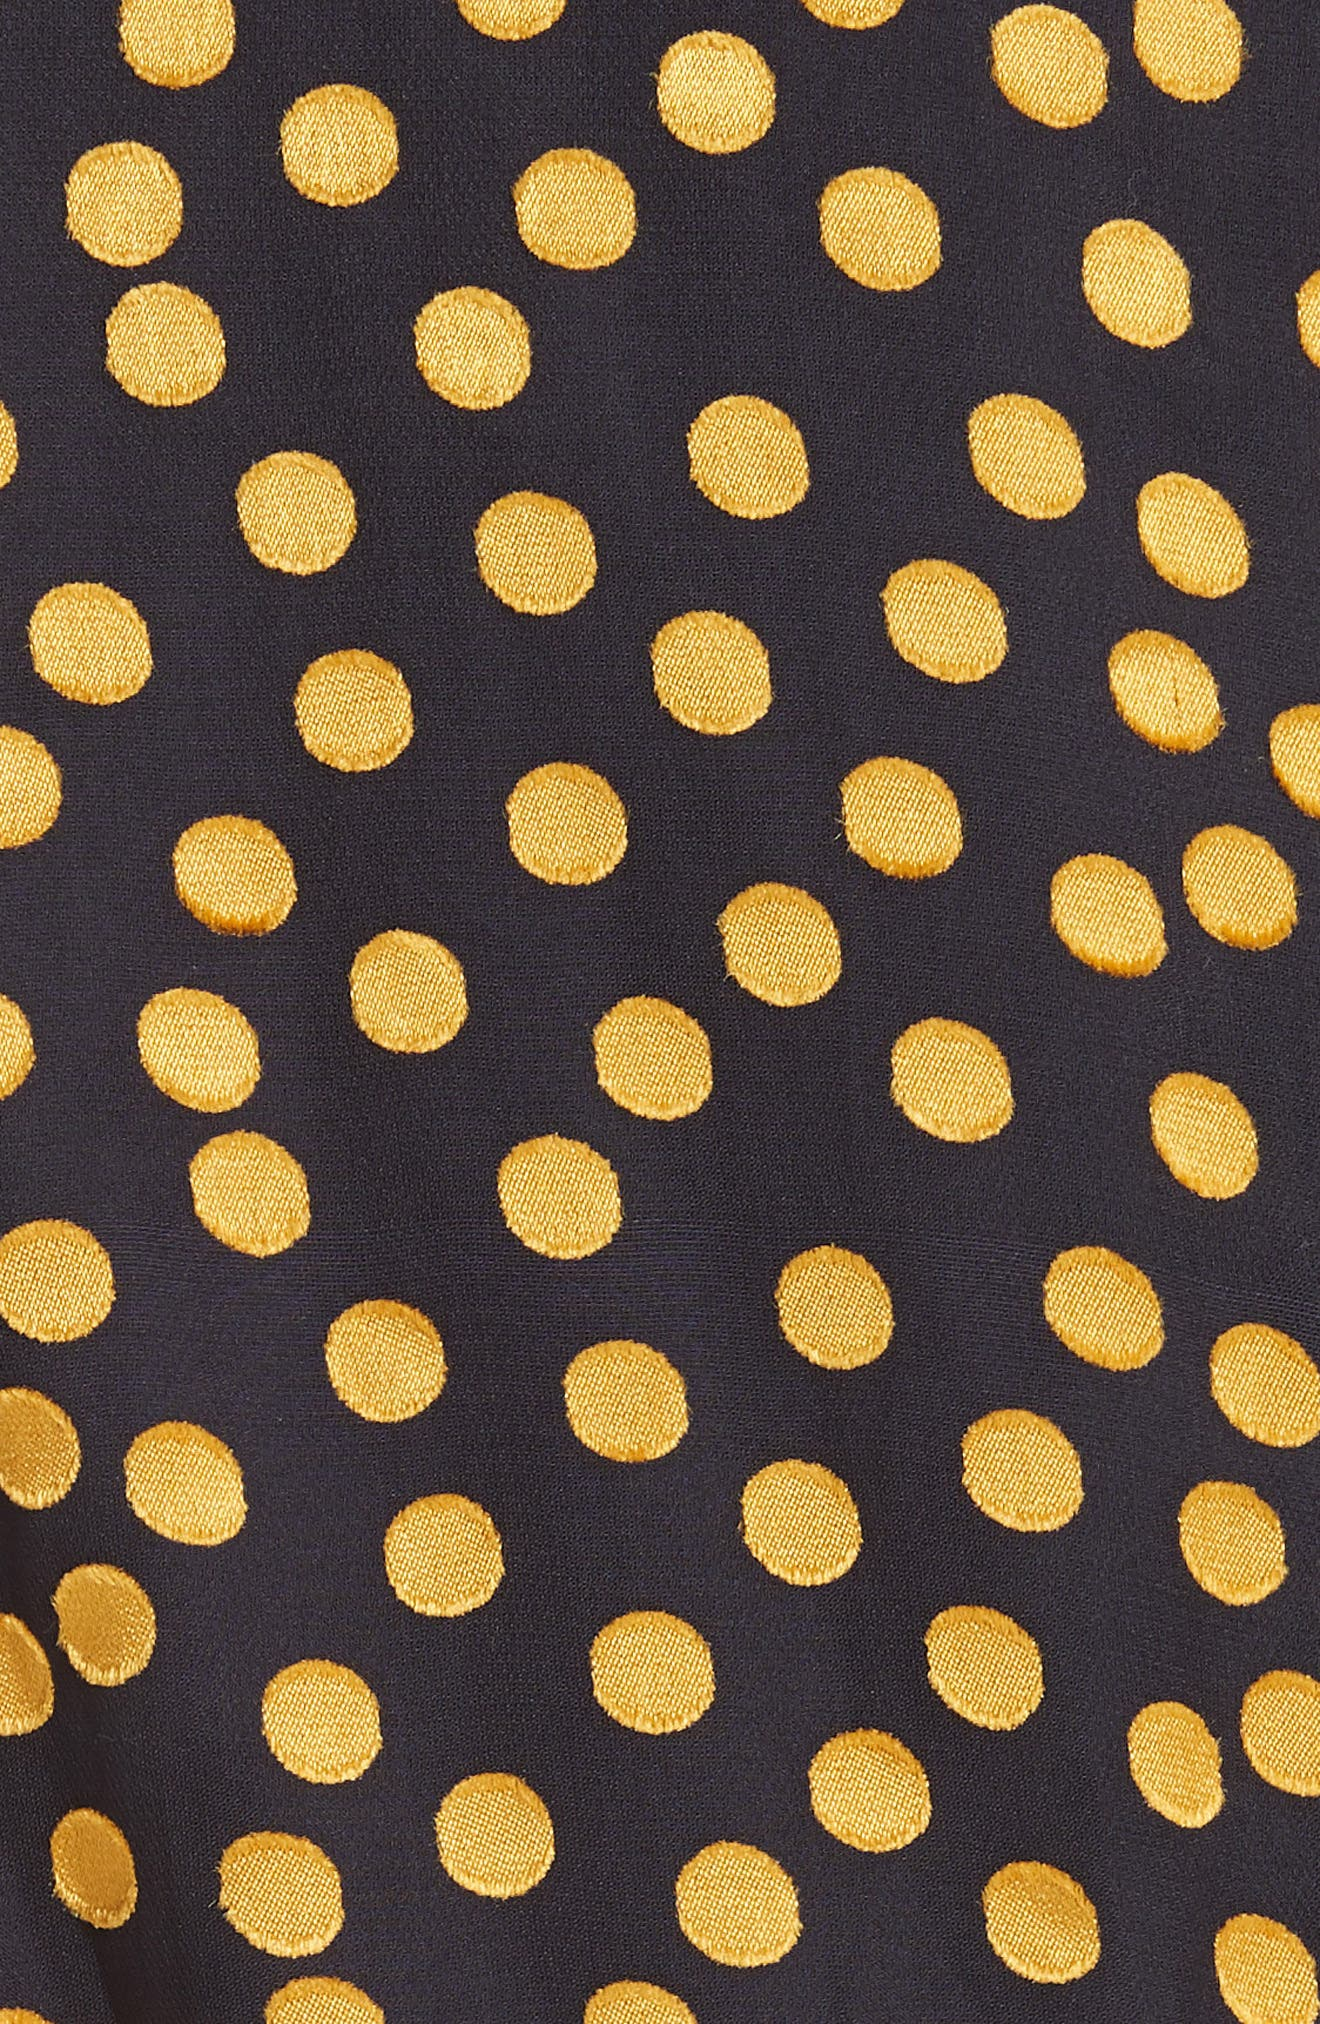 SALONI, Isa Polka Dot Devoré Satin Dress, Alternate thumbnail 5, color, BLACK/ YELLOW DOTS